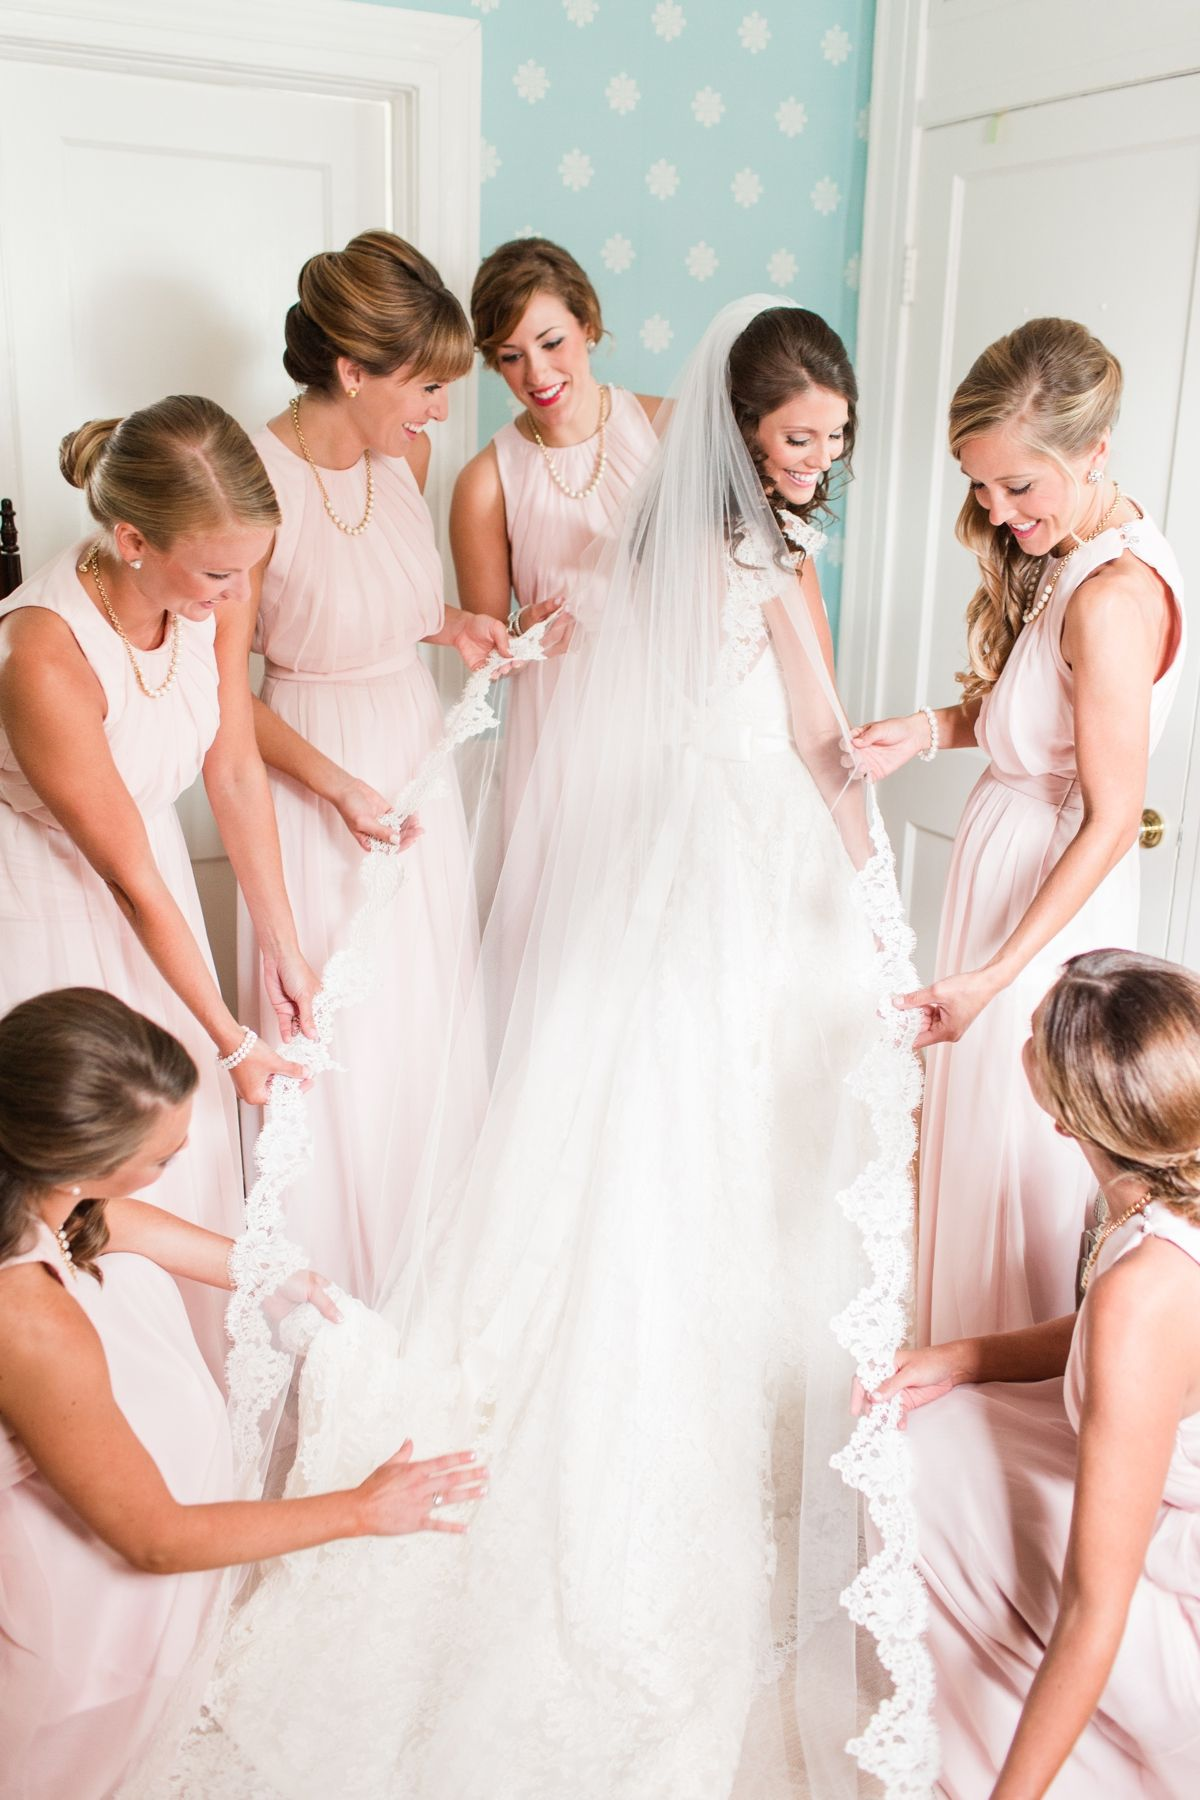 Wedding Dress Shops In Richmond Va - Ocodea.com